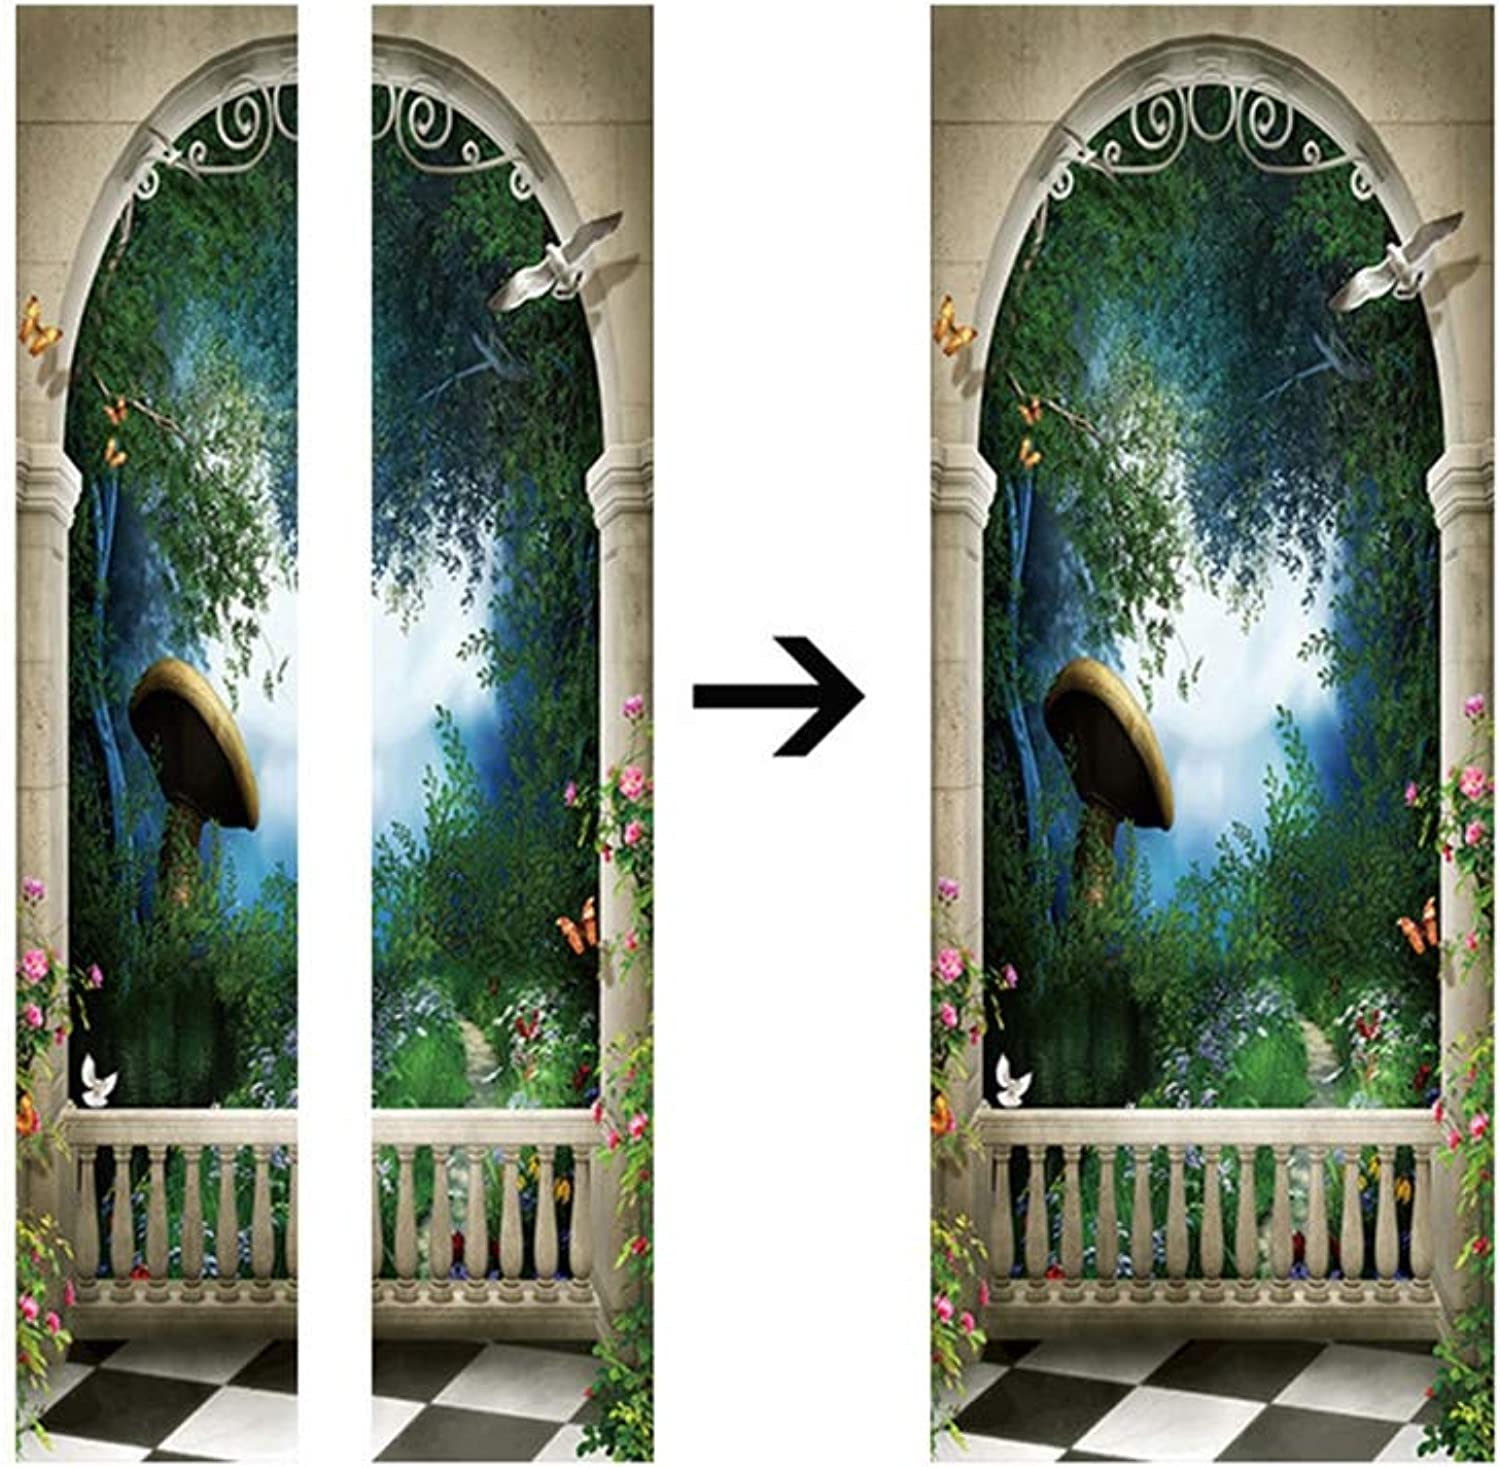 Home Decorative PVC Wall Stickers Giant Mushroom Door Corridor Stickers Modern Porch Stickers 3D Simulation Decorative Wall Stickers